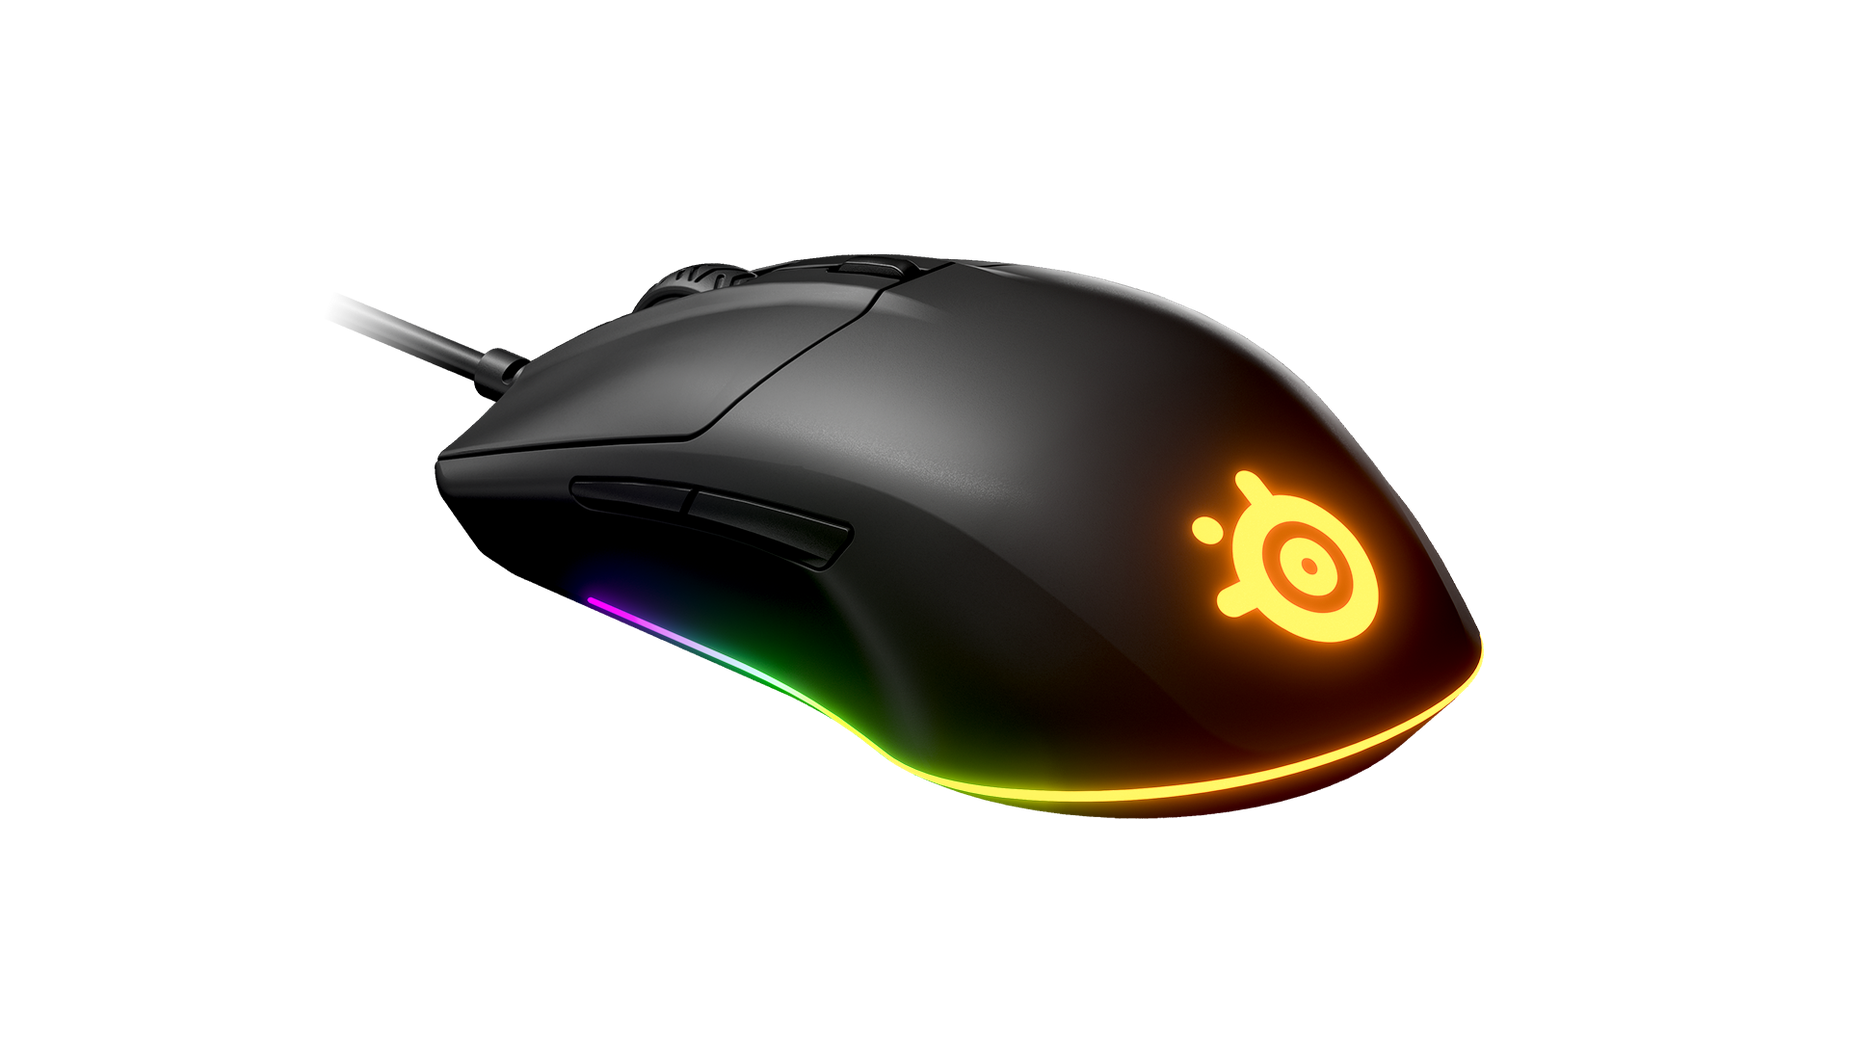 SteelSeries Rival 3 mouse floating in space